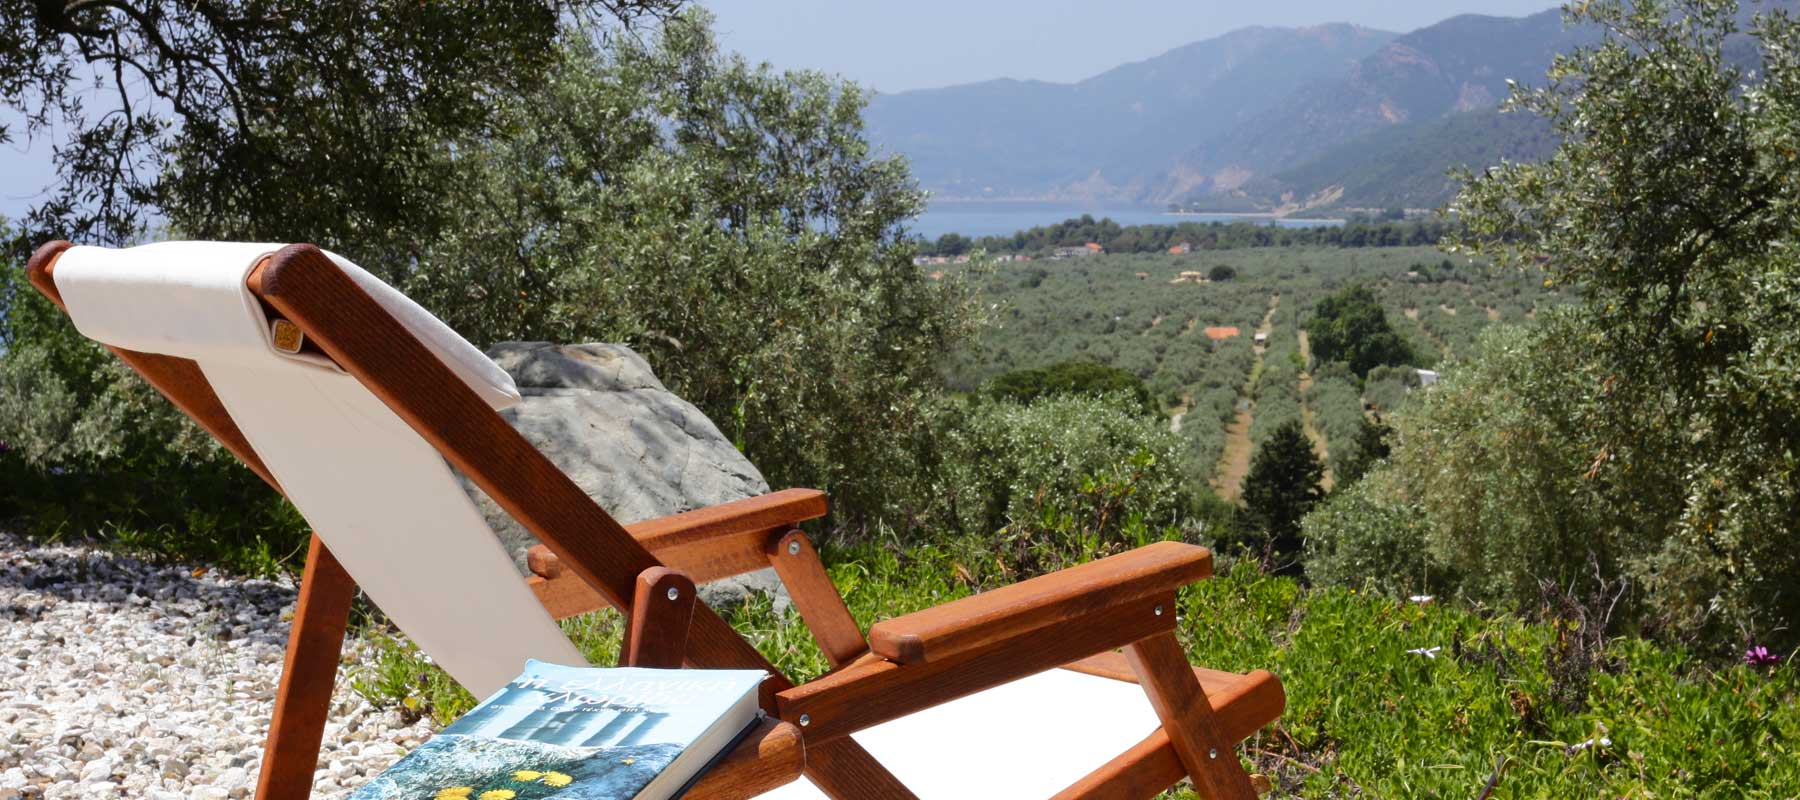 A quiet haven with tranquil views over calm seas and the sweeping olive grove